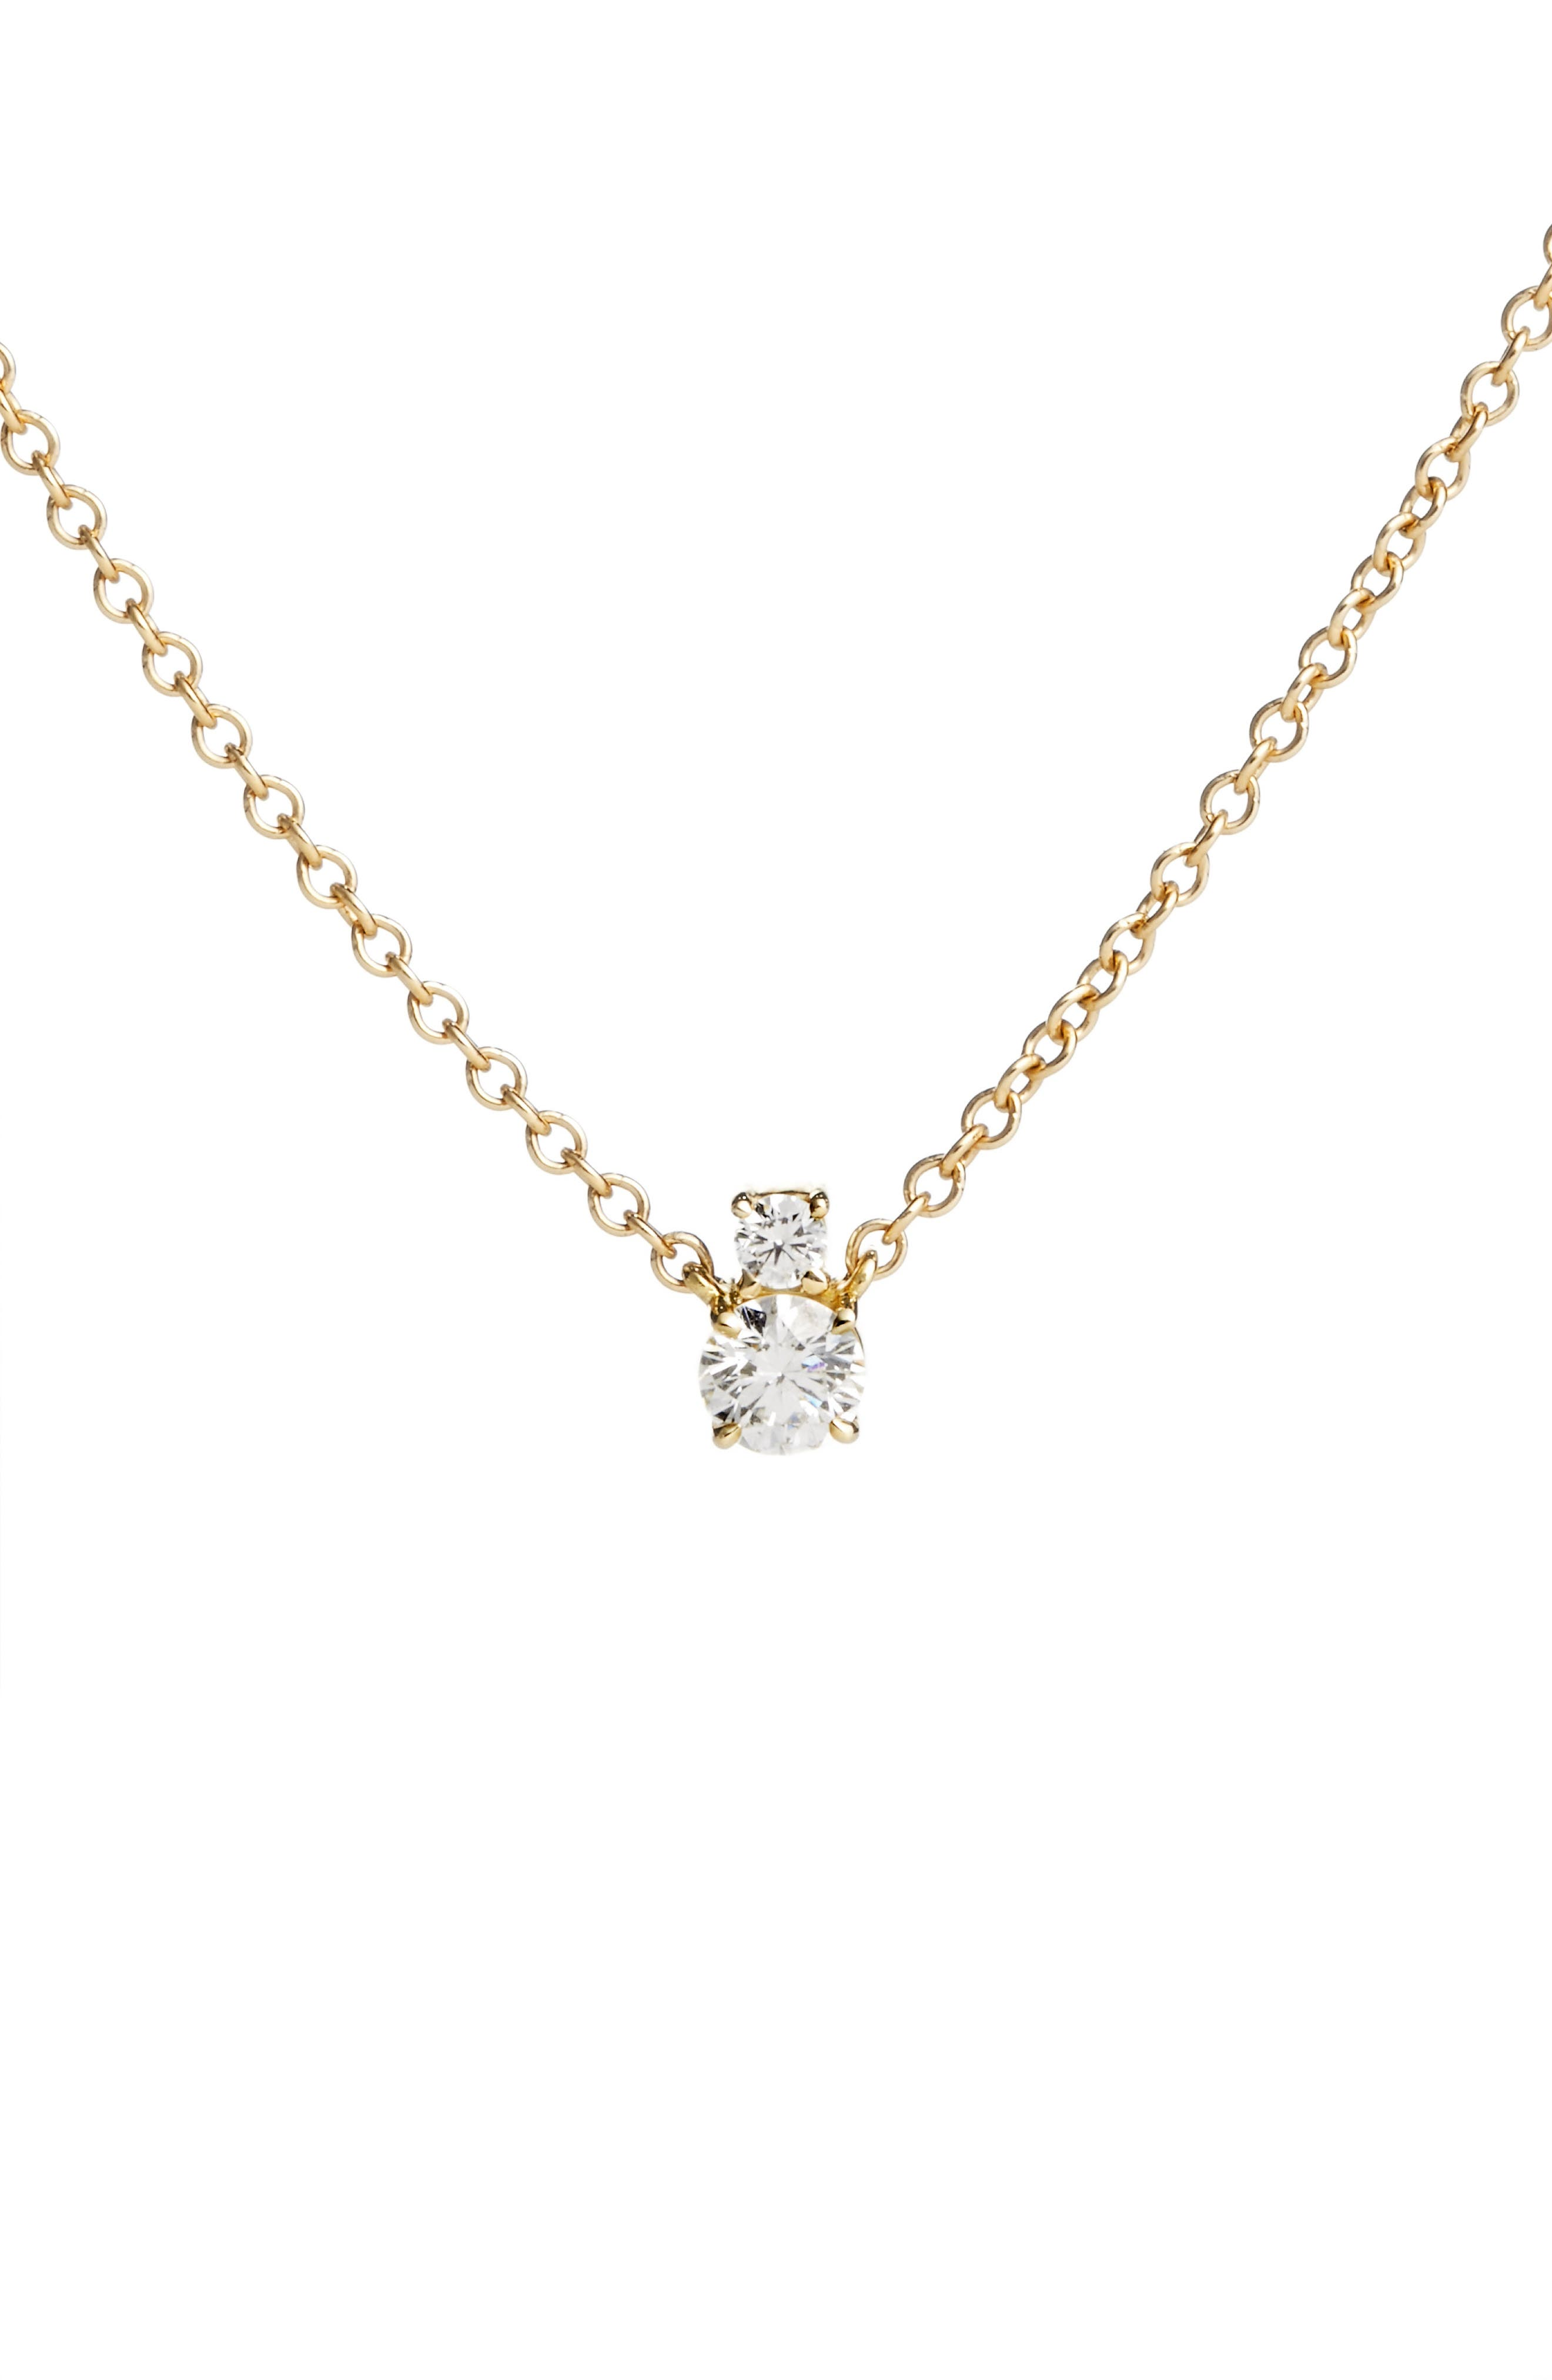 Jemma Wynne Prive Luxe 18K Gold & Diamond Solitaire Necklace